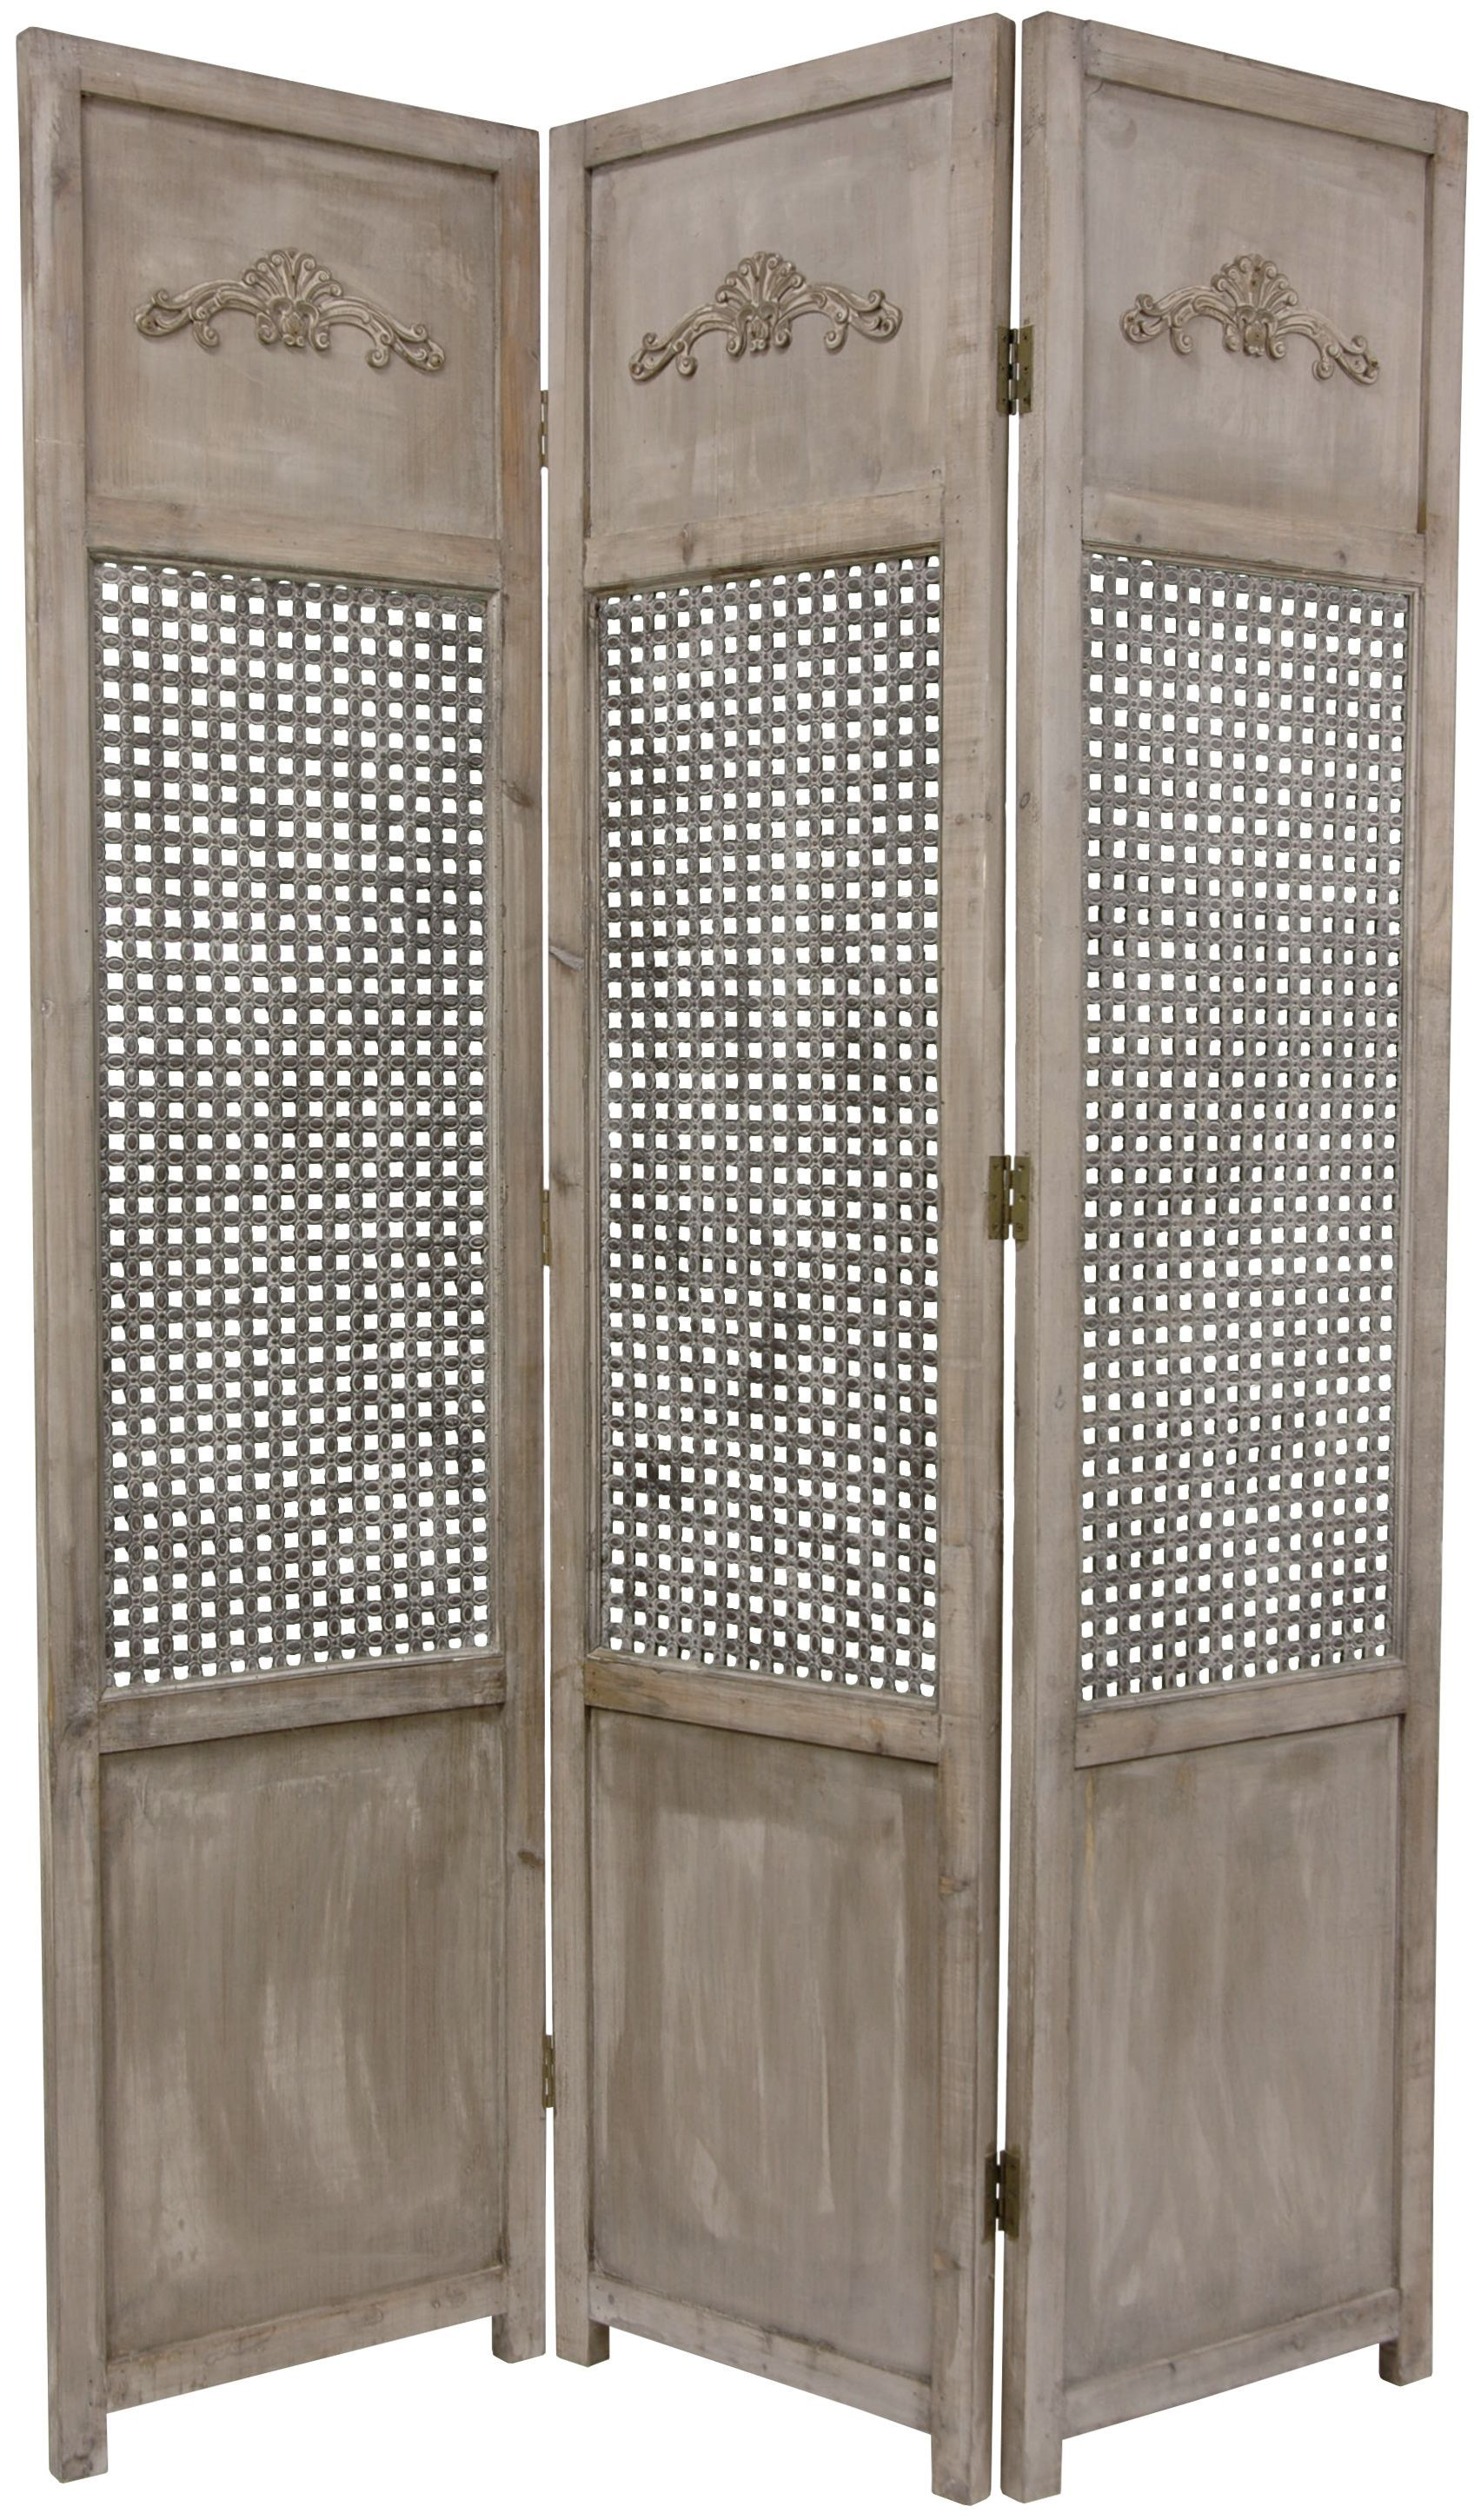 6 Ft Tall Open Mesh Room Divider Free Shipping On All Room